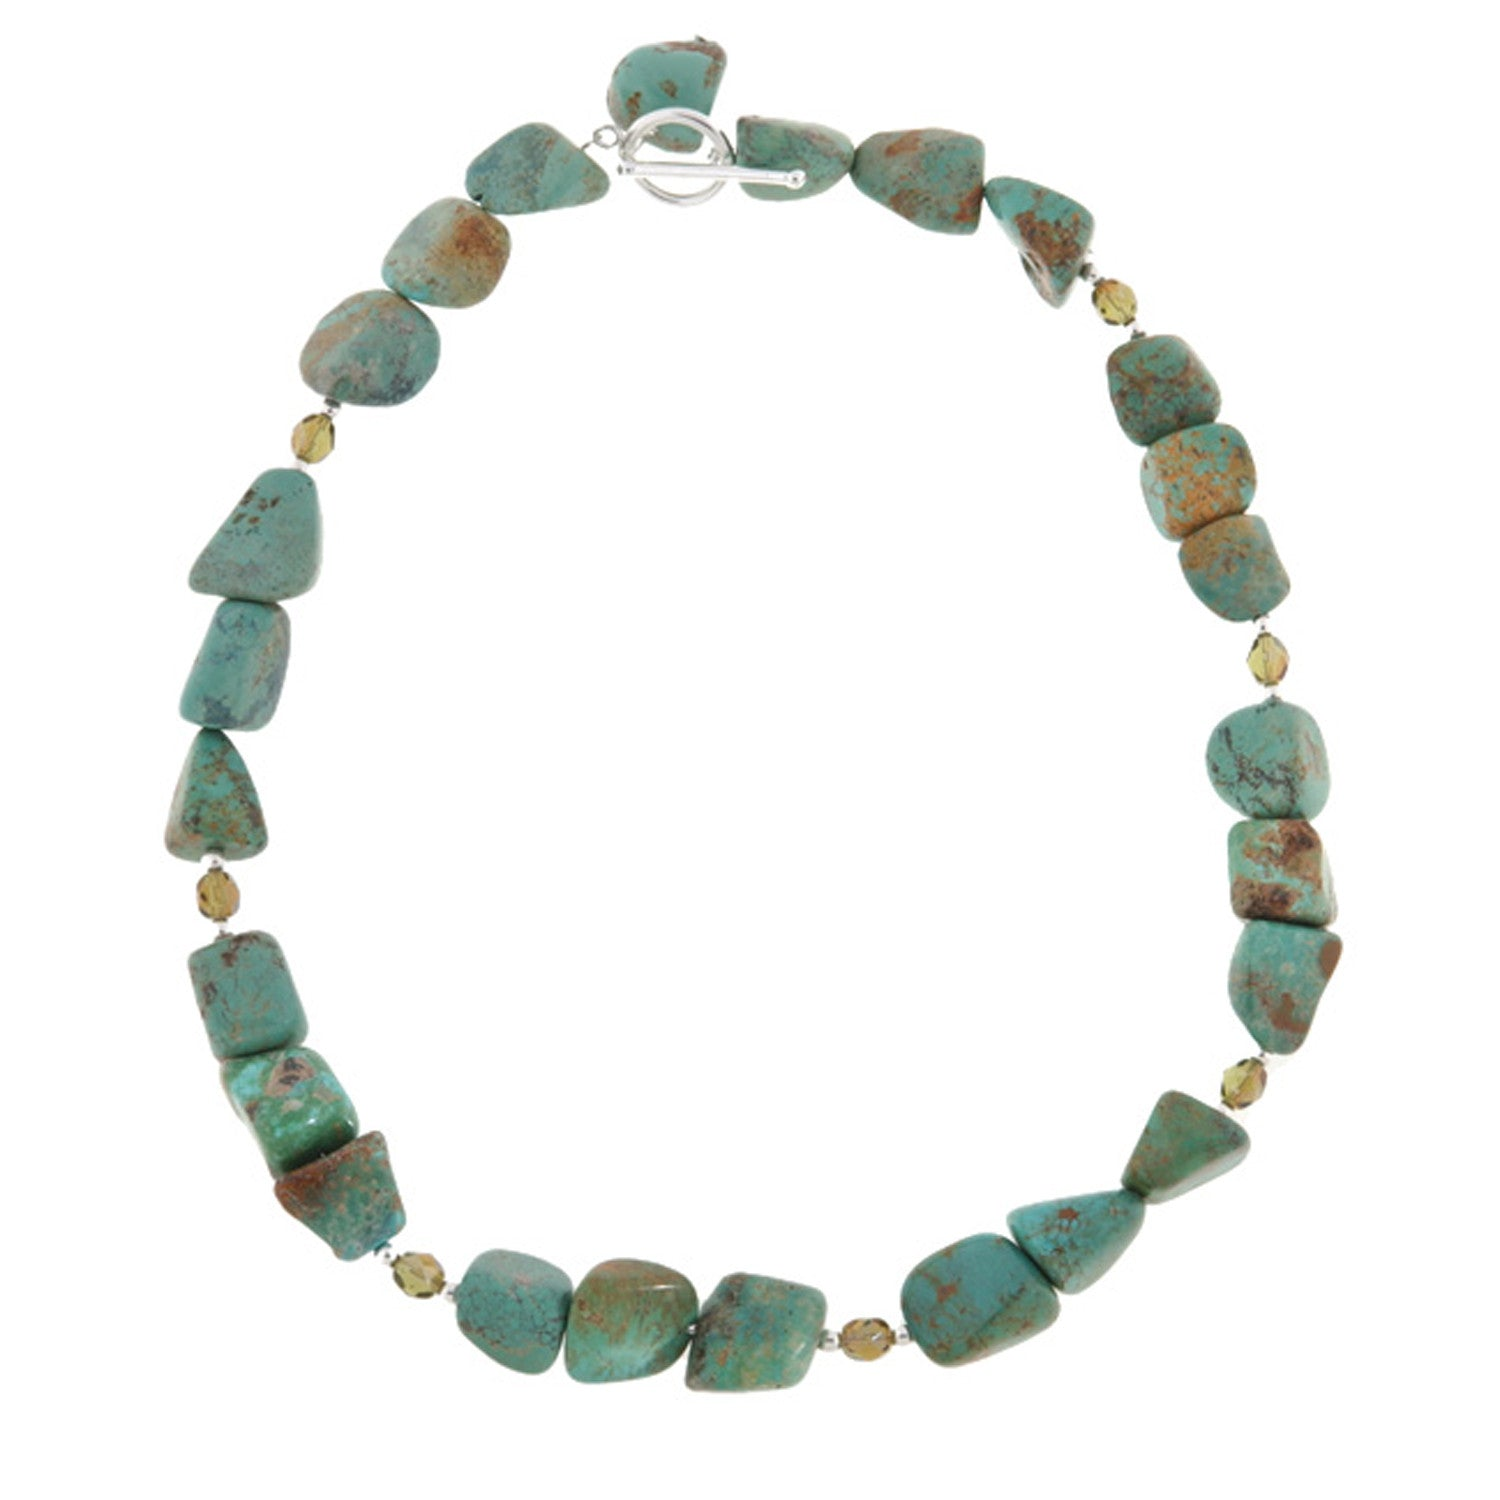 Sterling Silver Diamond Cut Beaded Necklace - Turquoise